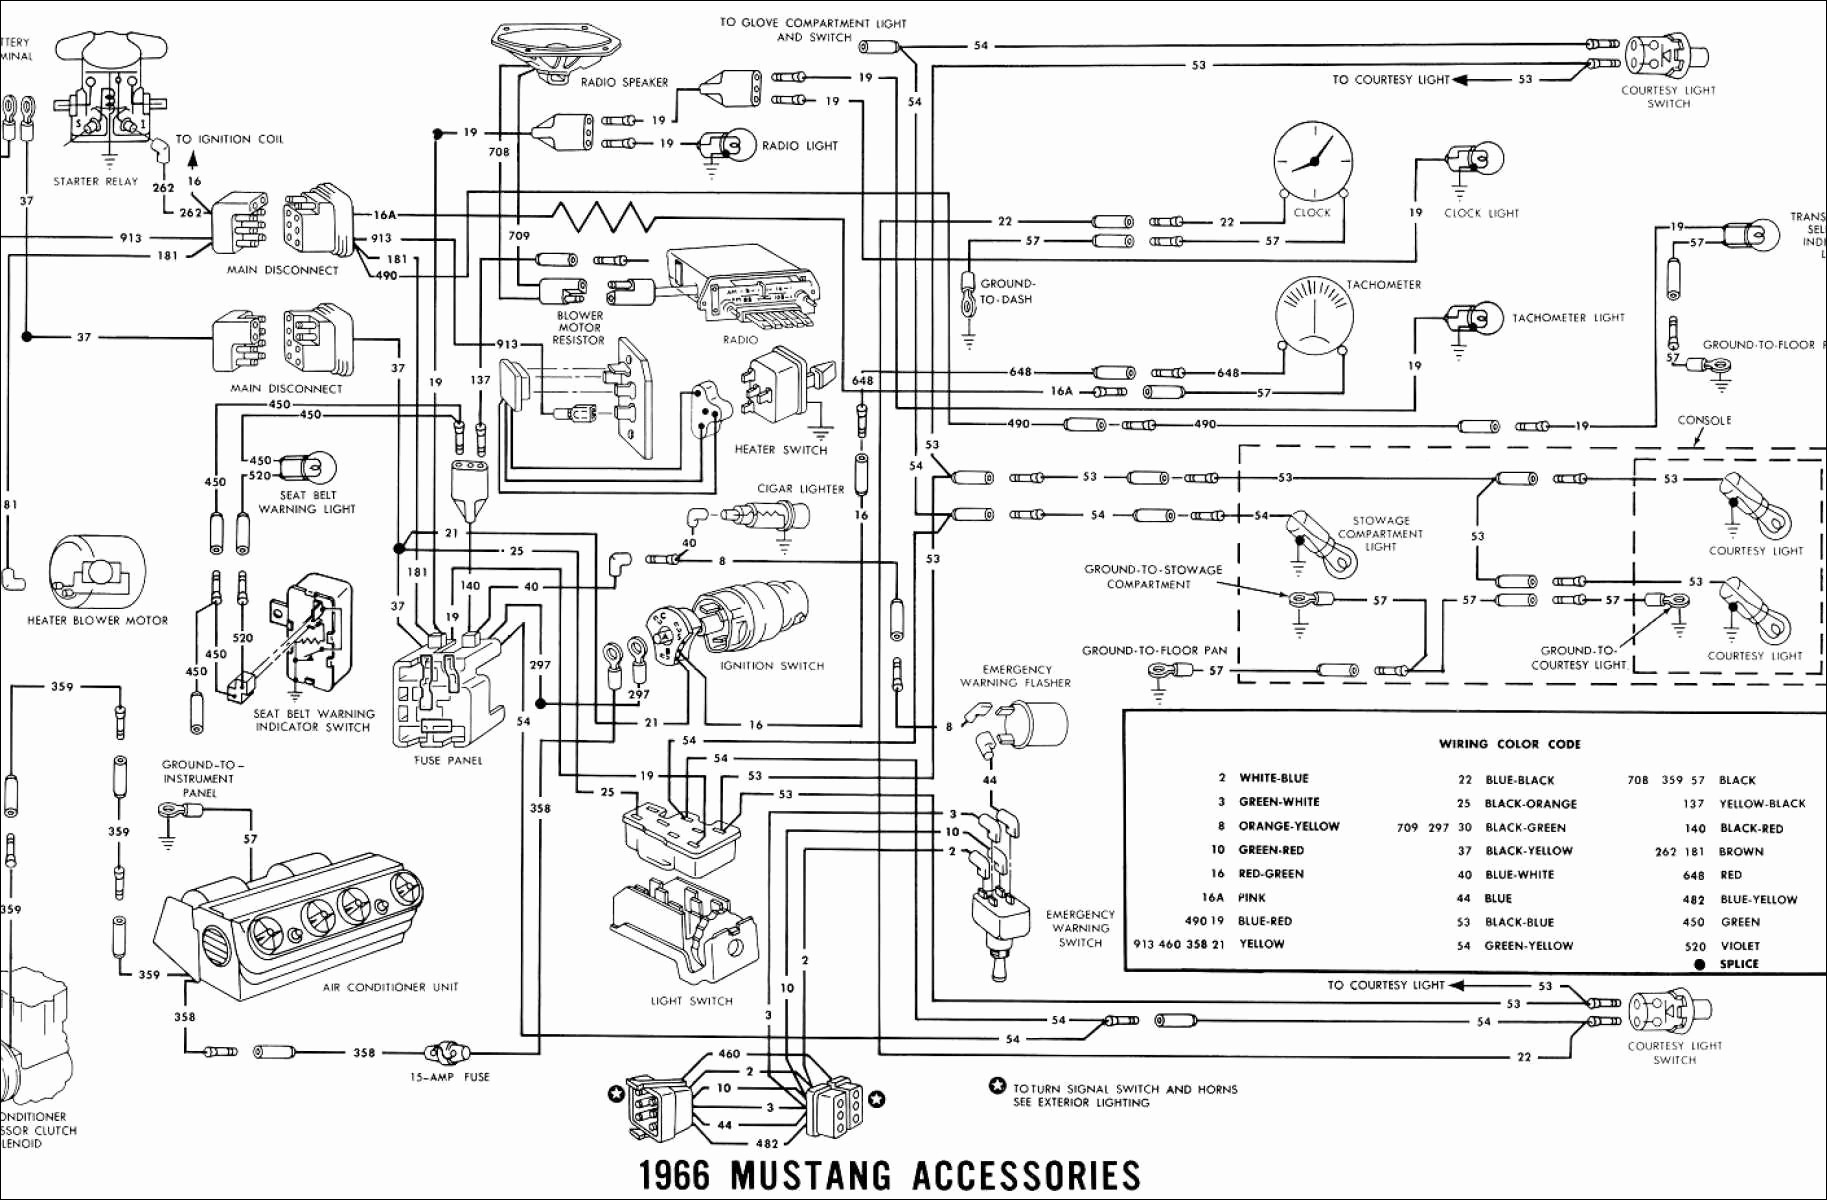 Meyer Snow Plow Wiring Diagram Myers Qp 30 Wiring Diagram Wiring Of Meyer Snow Plow Wiring Diagram Myers Qp 30 Wiring Diagram Wiring